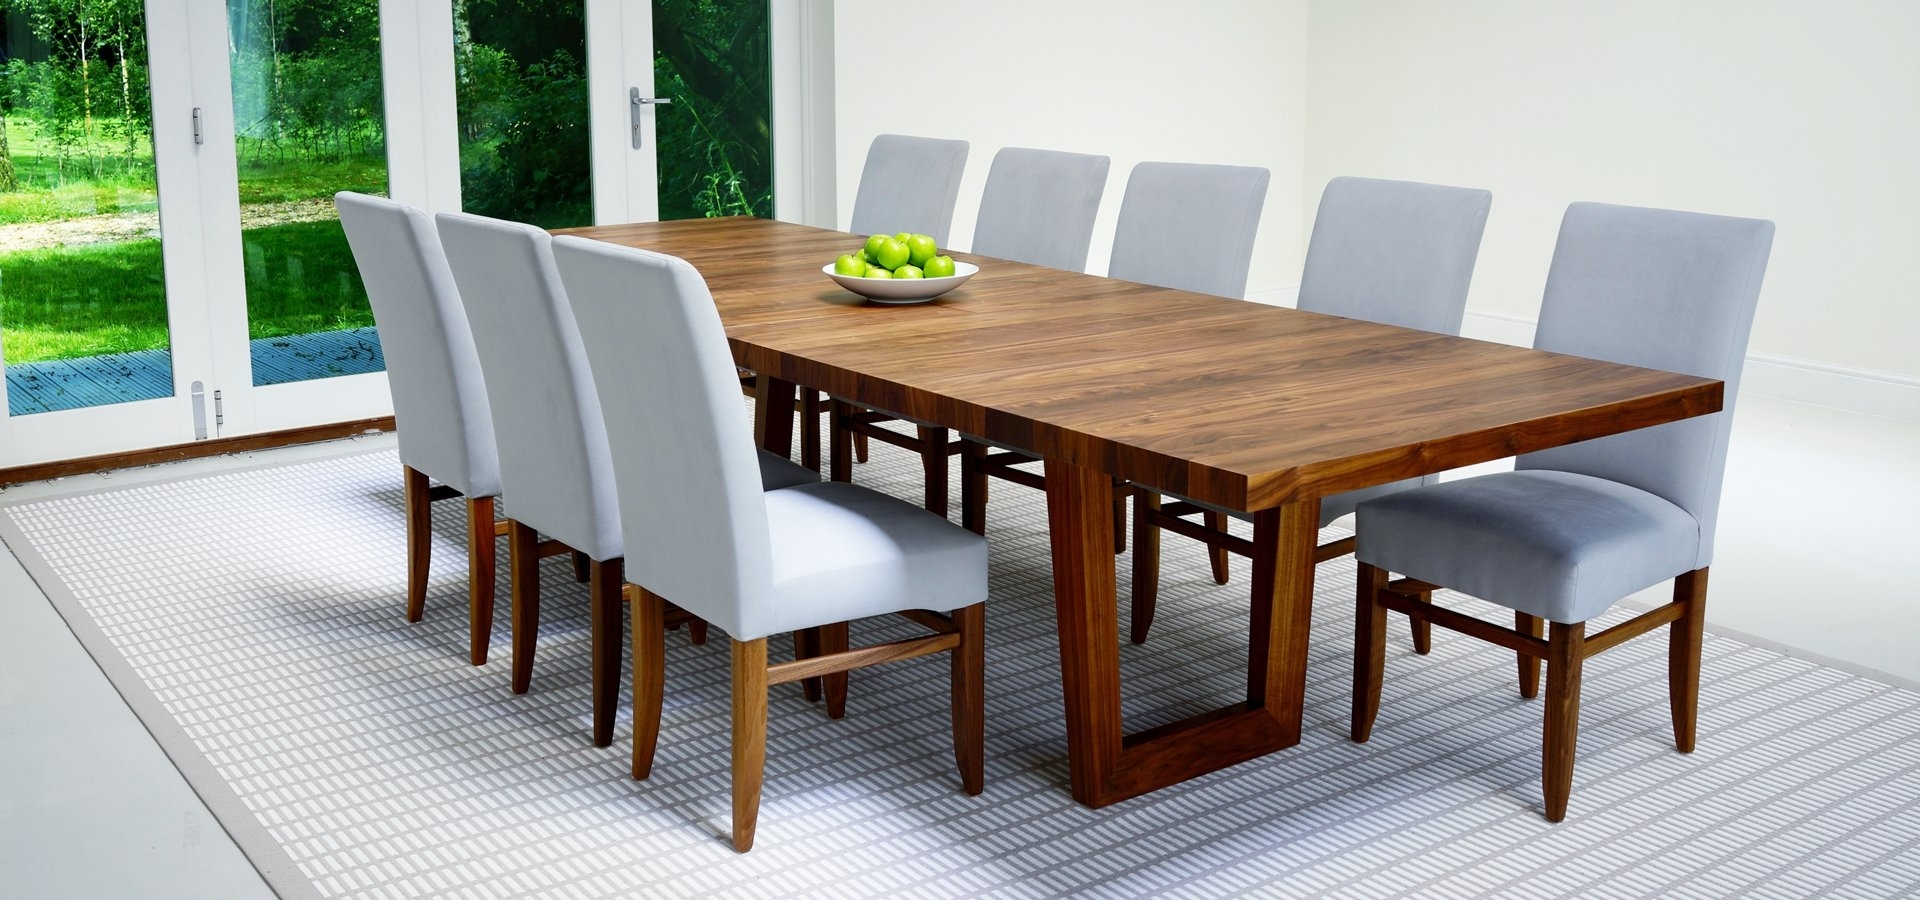 Favorite Extendable Dining Tables With 6 Chairs Inside Contemporary Dining Tables & Furnitureberrydesign (View 11 of 25)